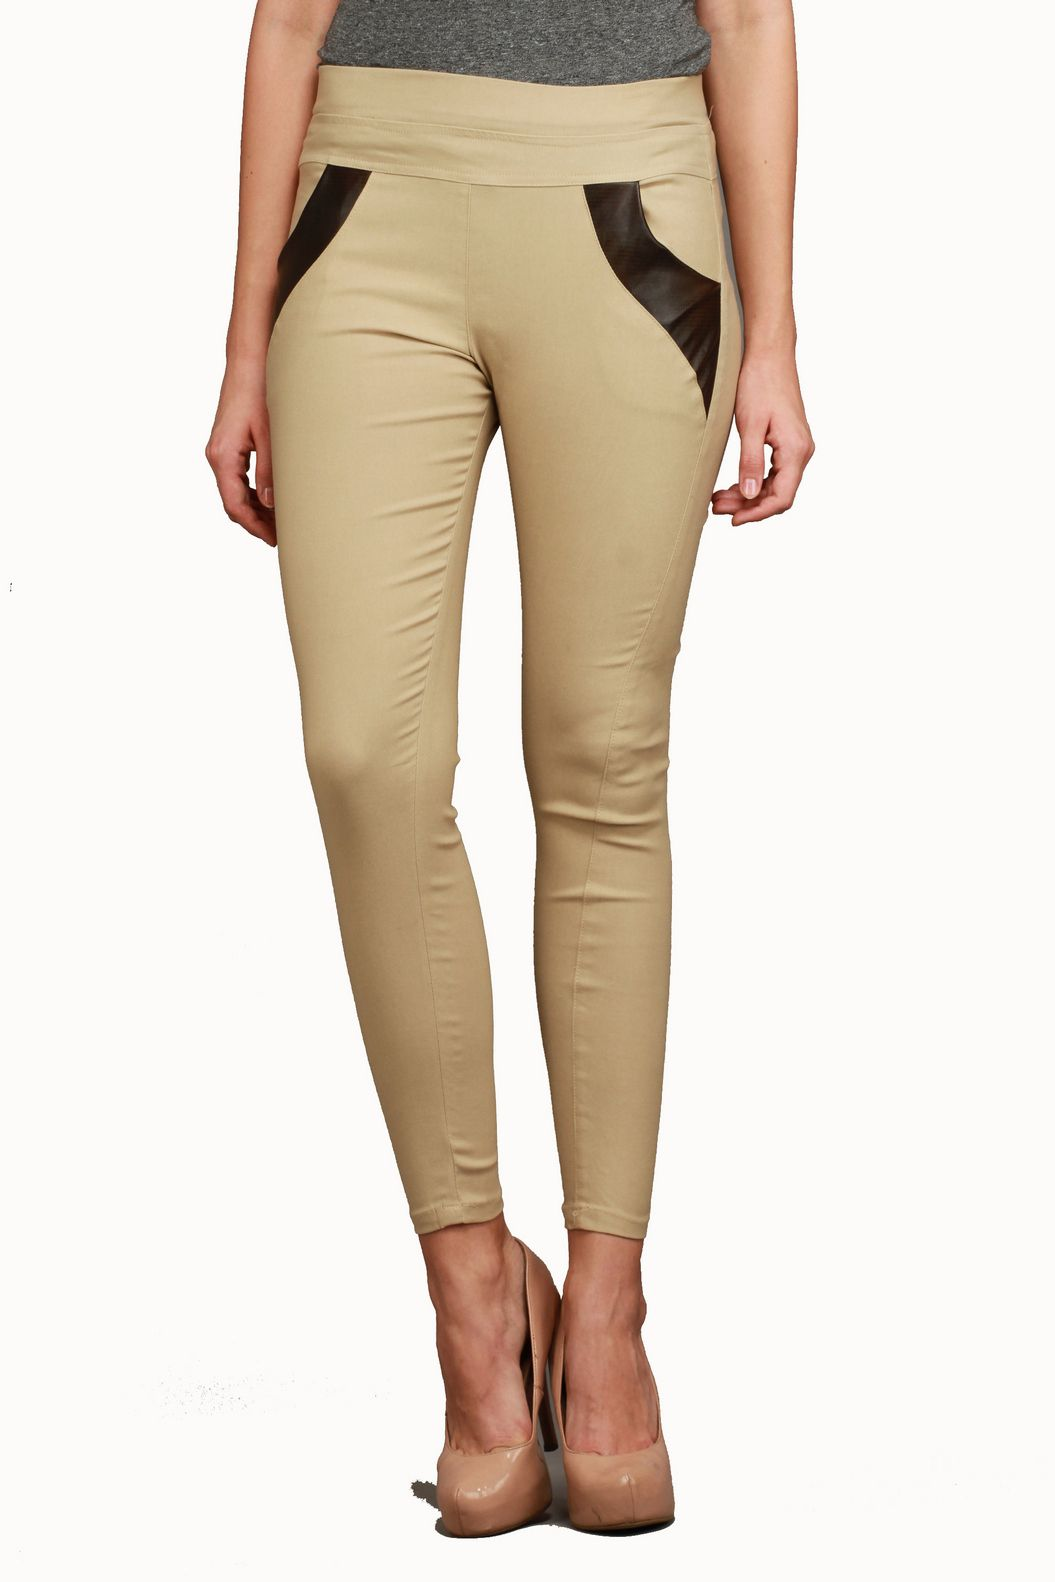 Makxziya Cotton Lycra Jeggings - Beige